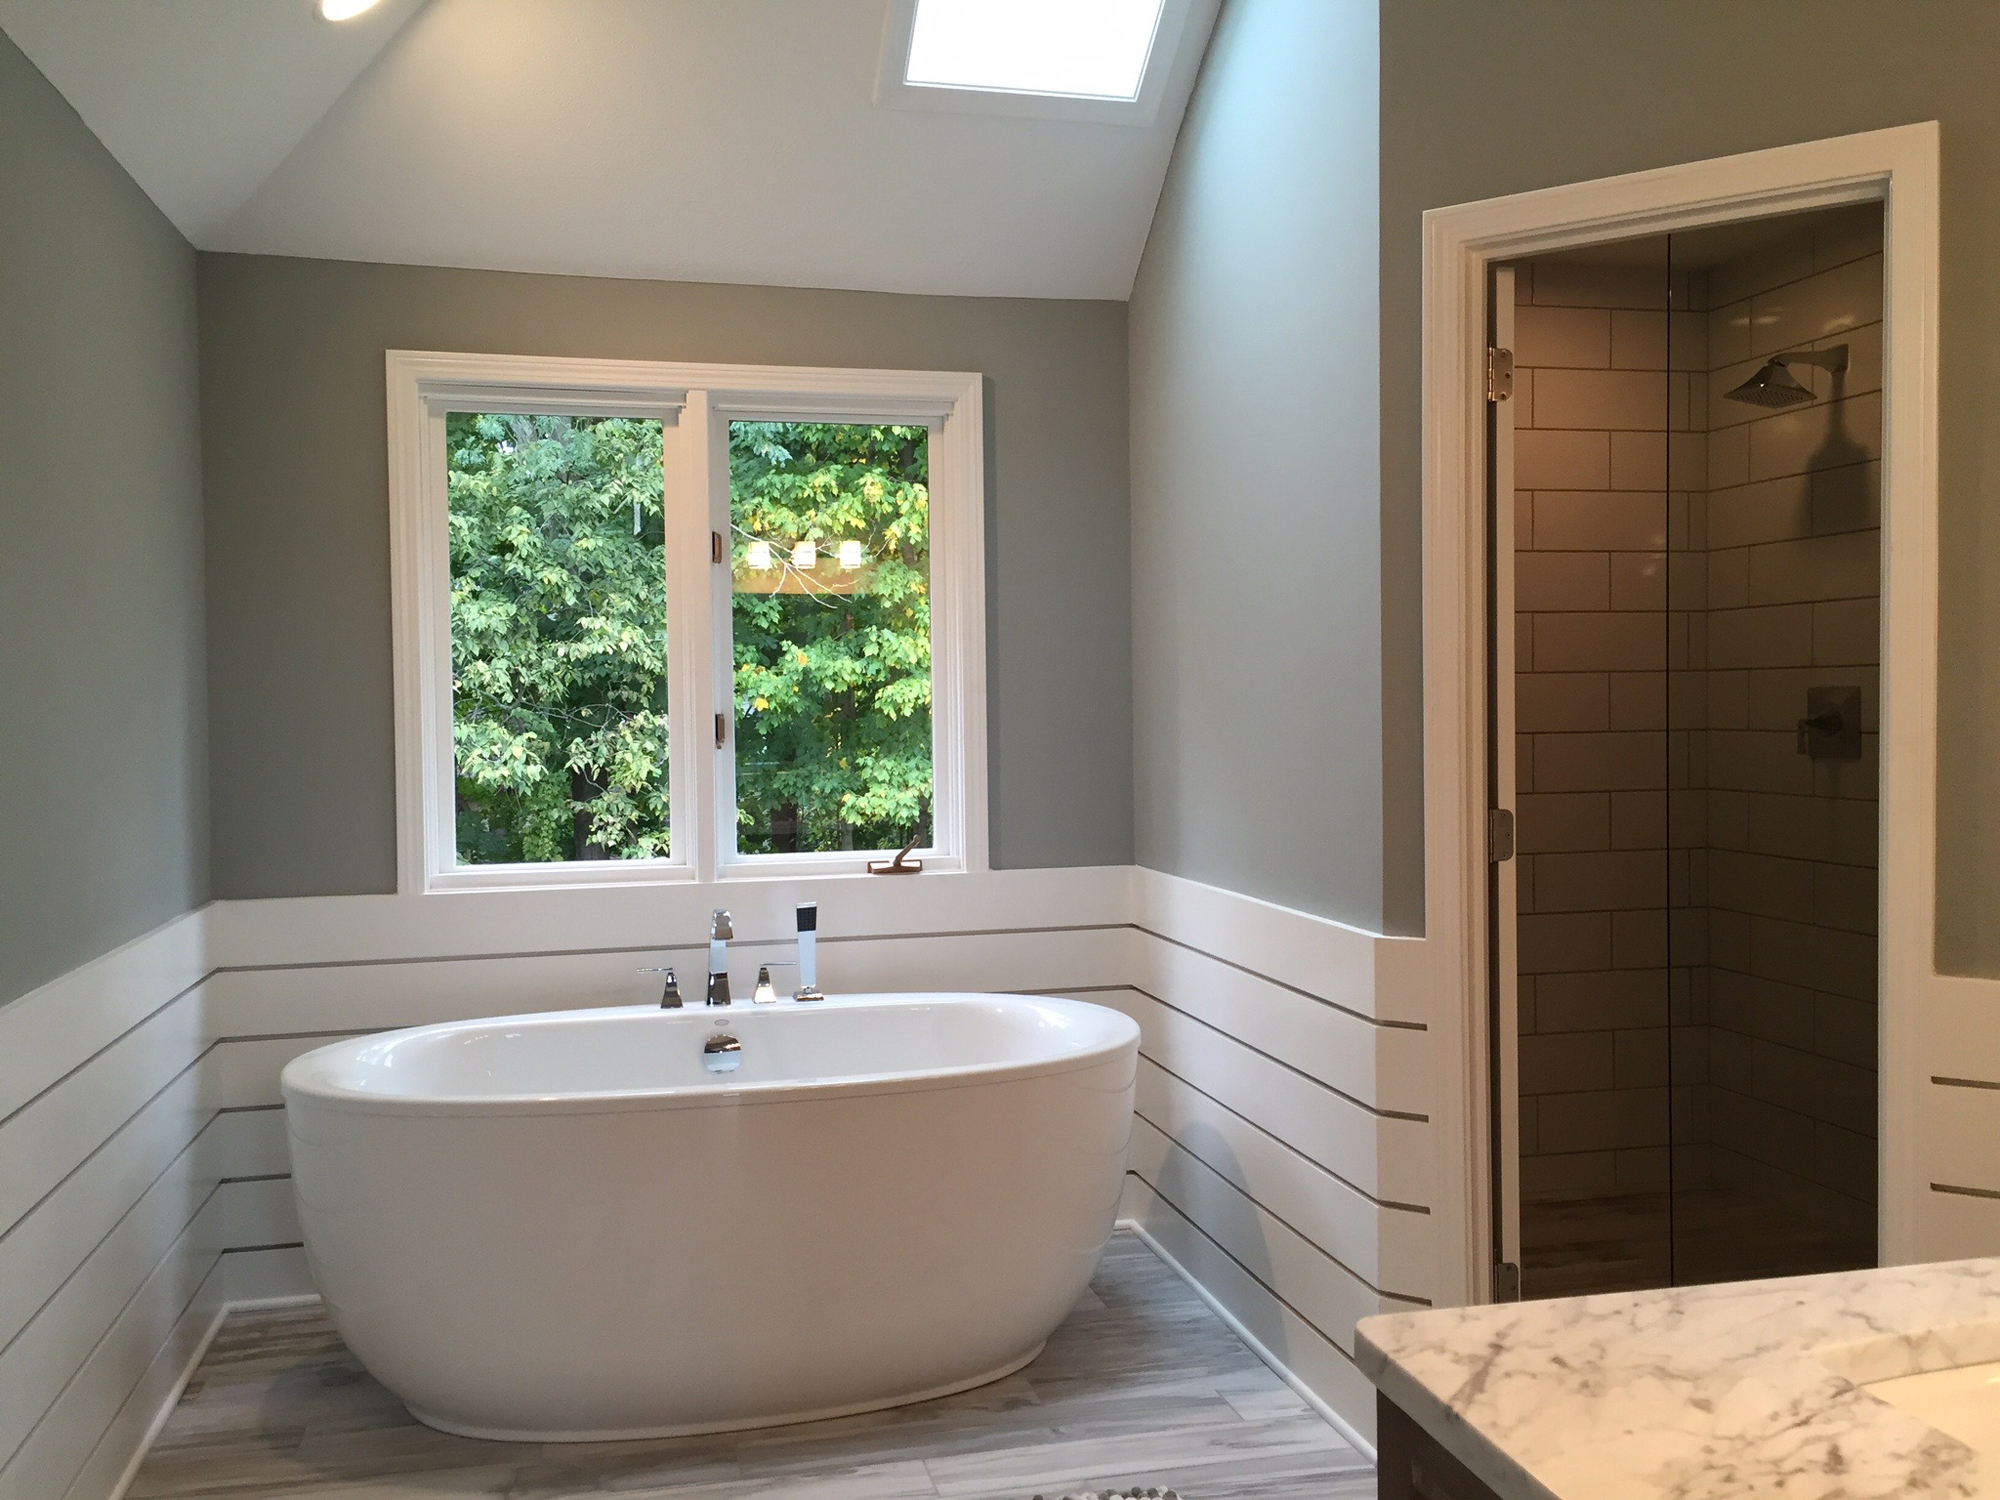 Column: Luxury tubs add beauty, style to bathroom | Current Publishing